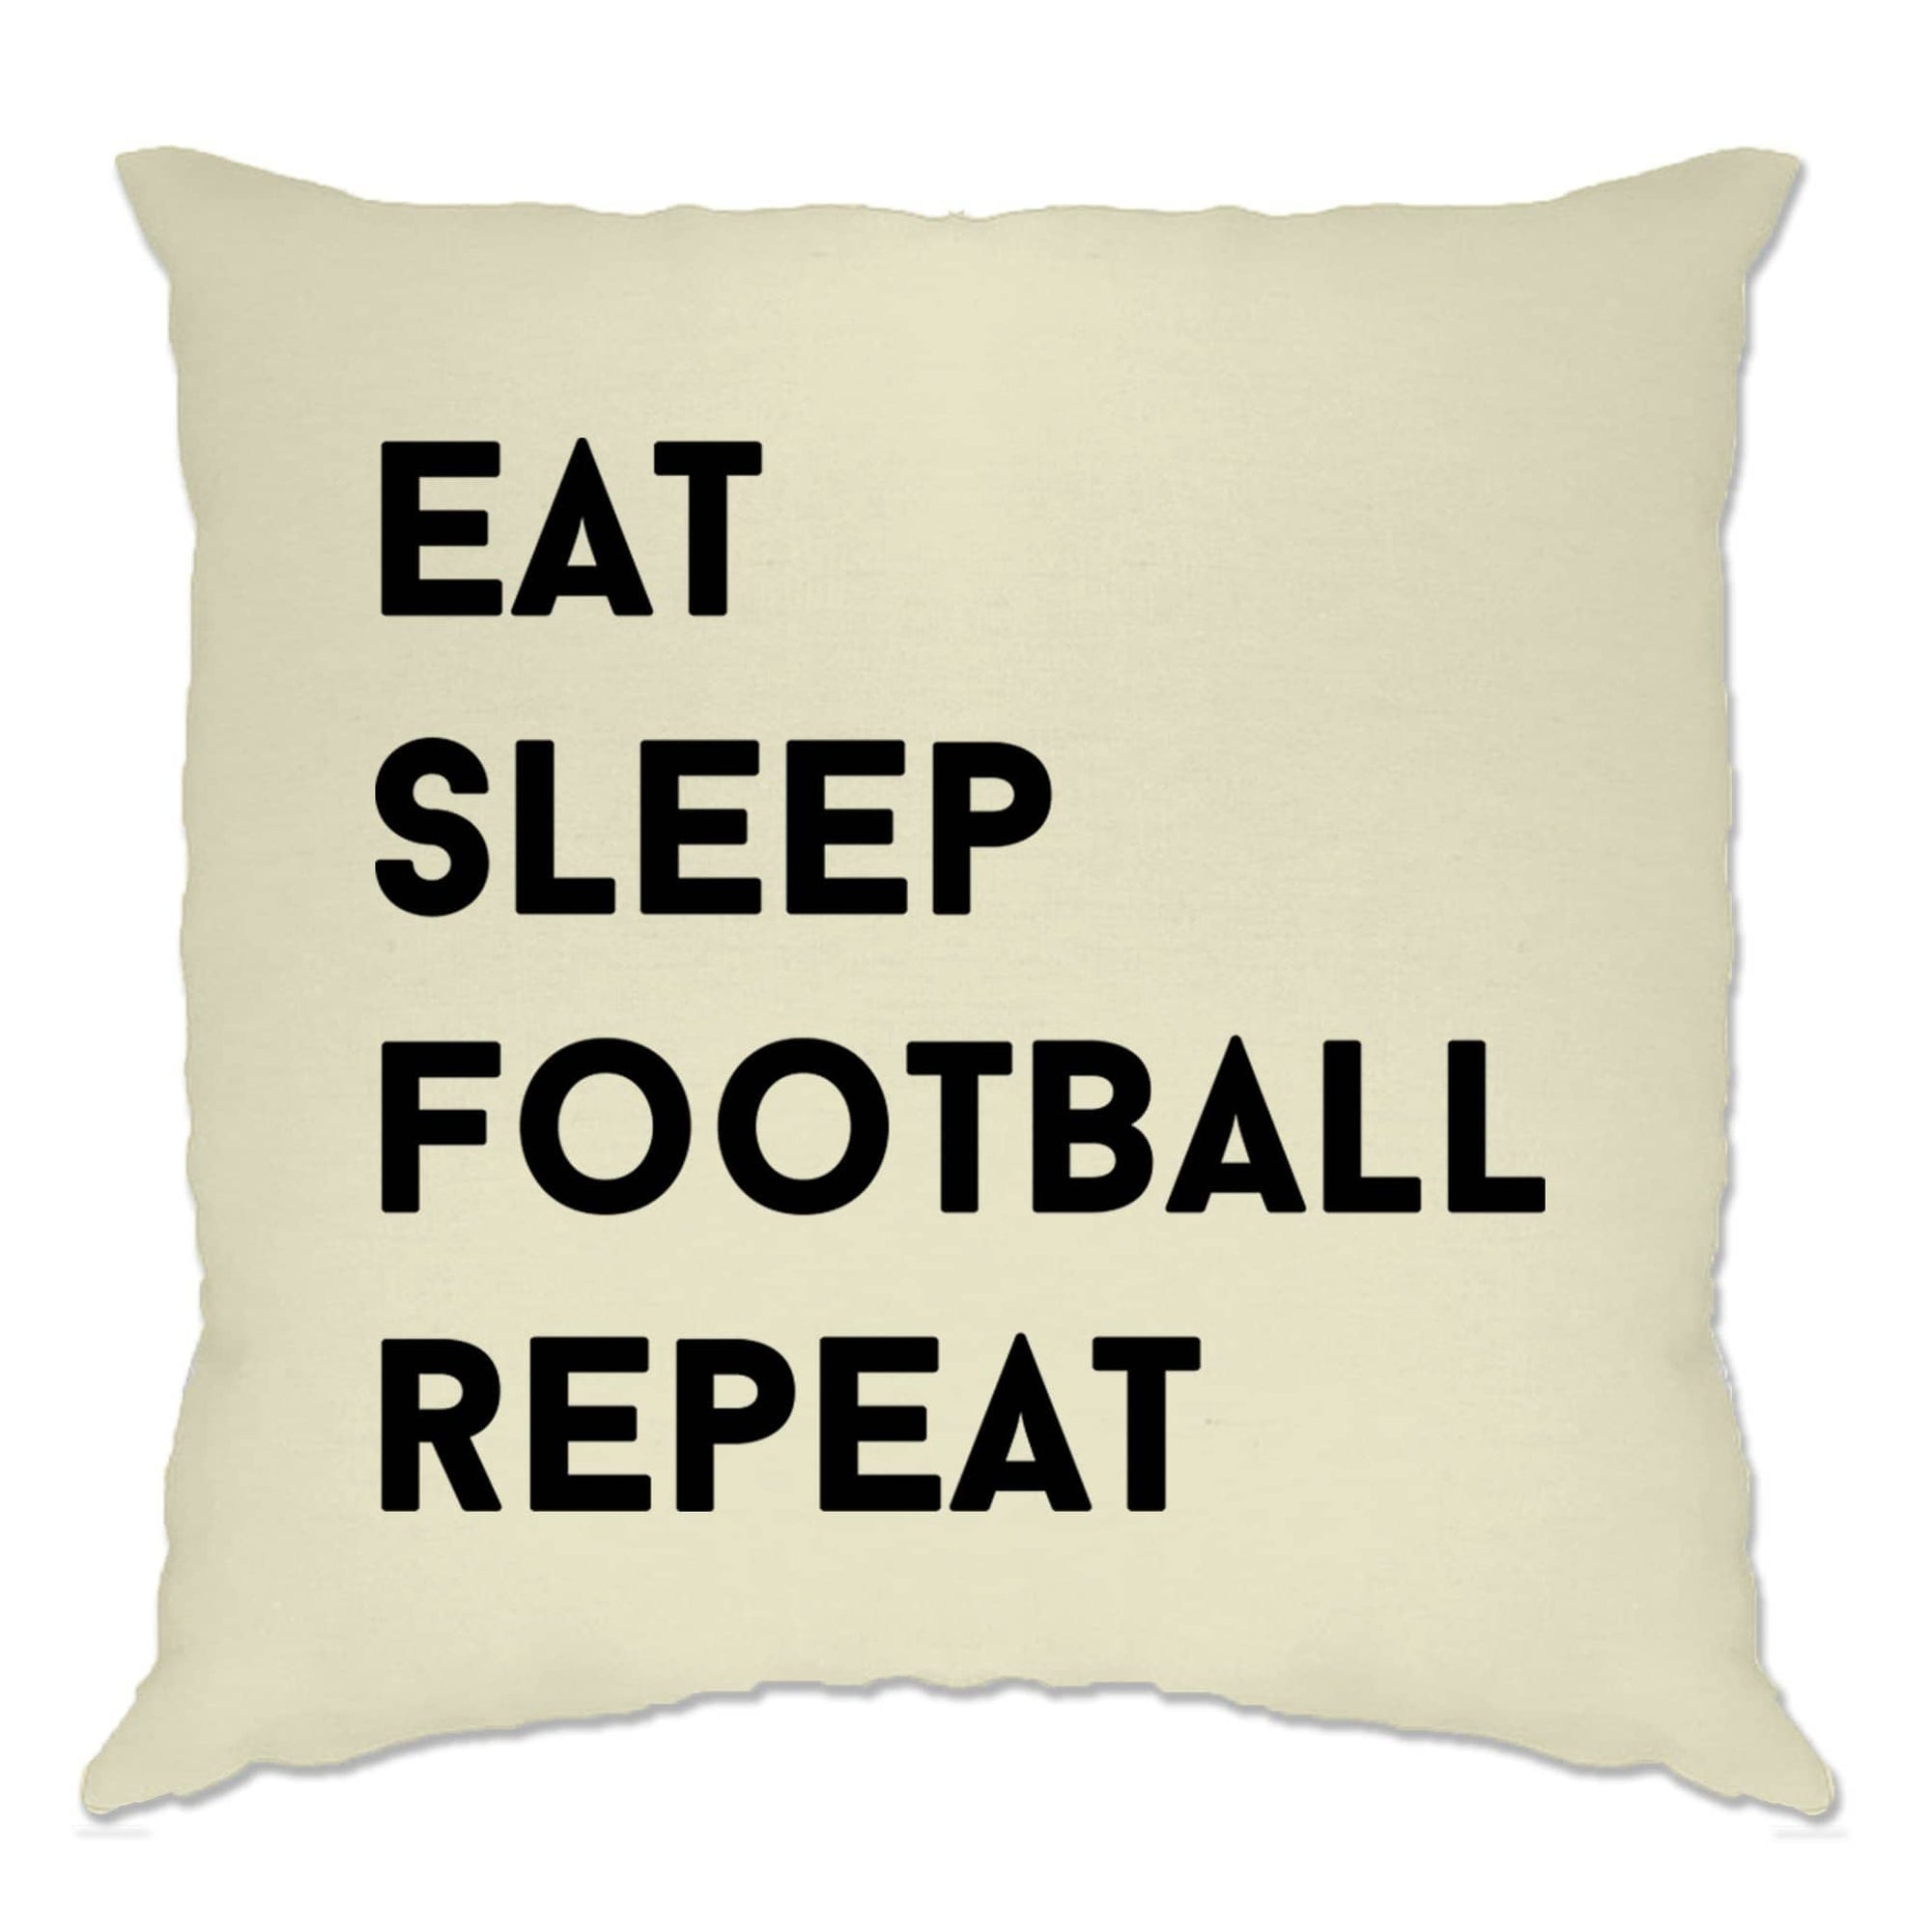 Sports Cushion Cover Eat, Sleep, Football, Repeat Slogan